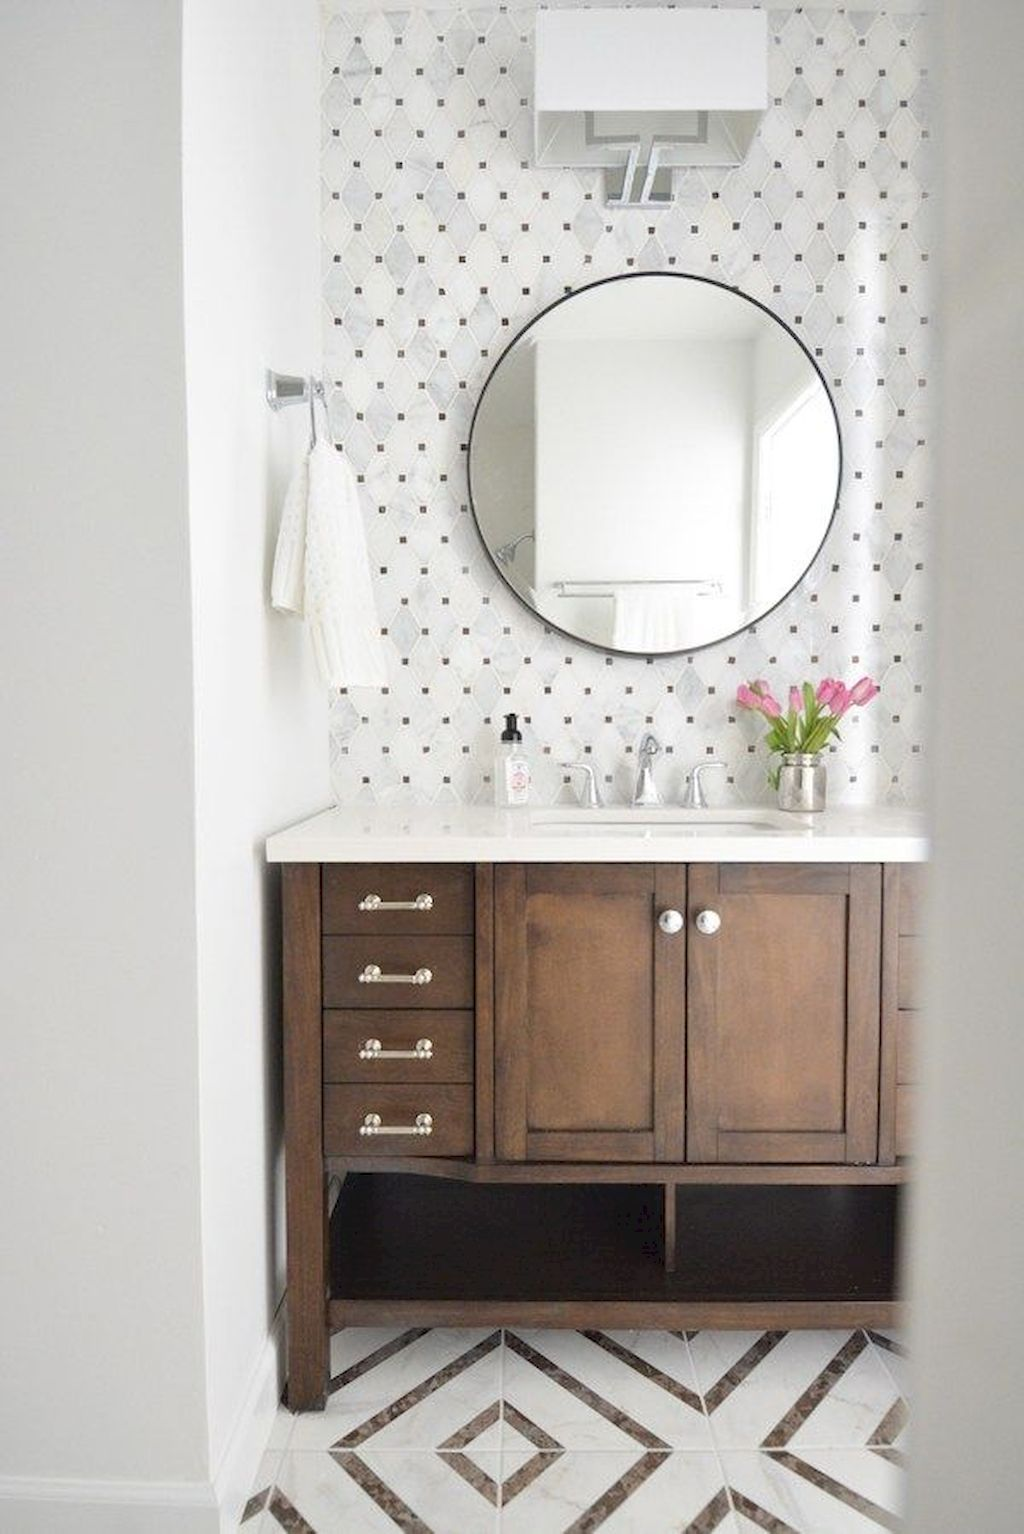 Awesome 65 Cool Small Master Bathroom Decor Ideas Source Link Https Doitdecor